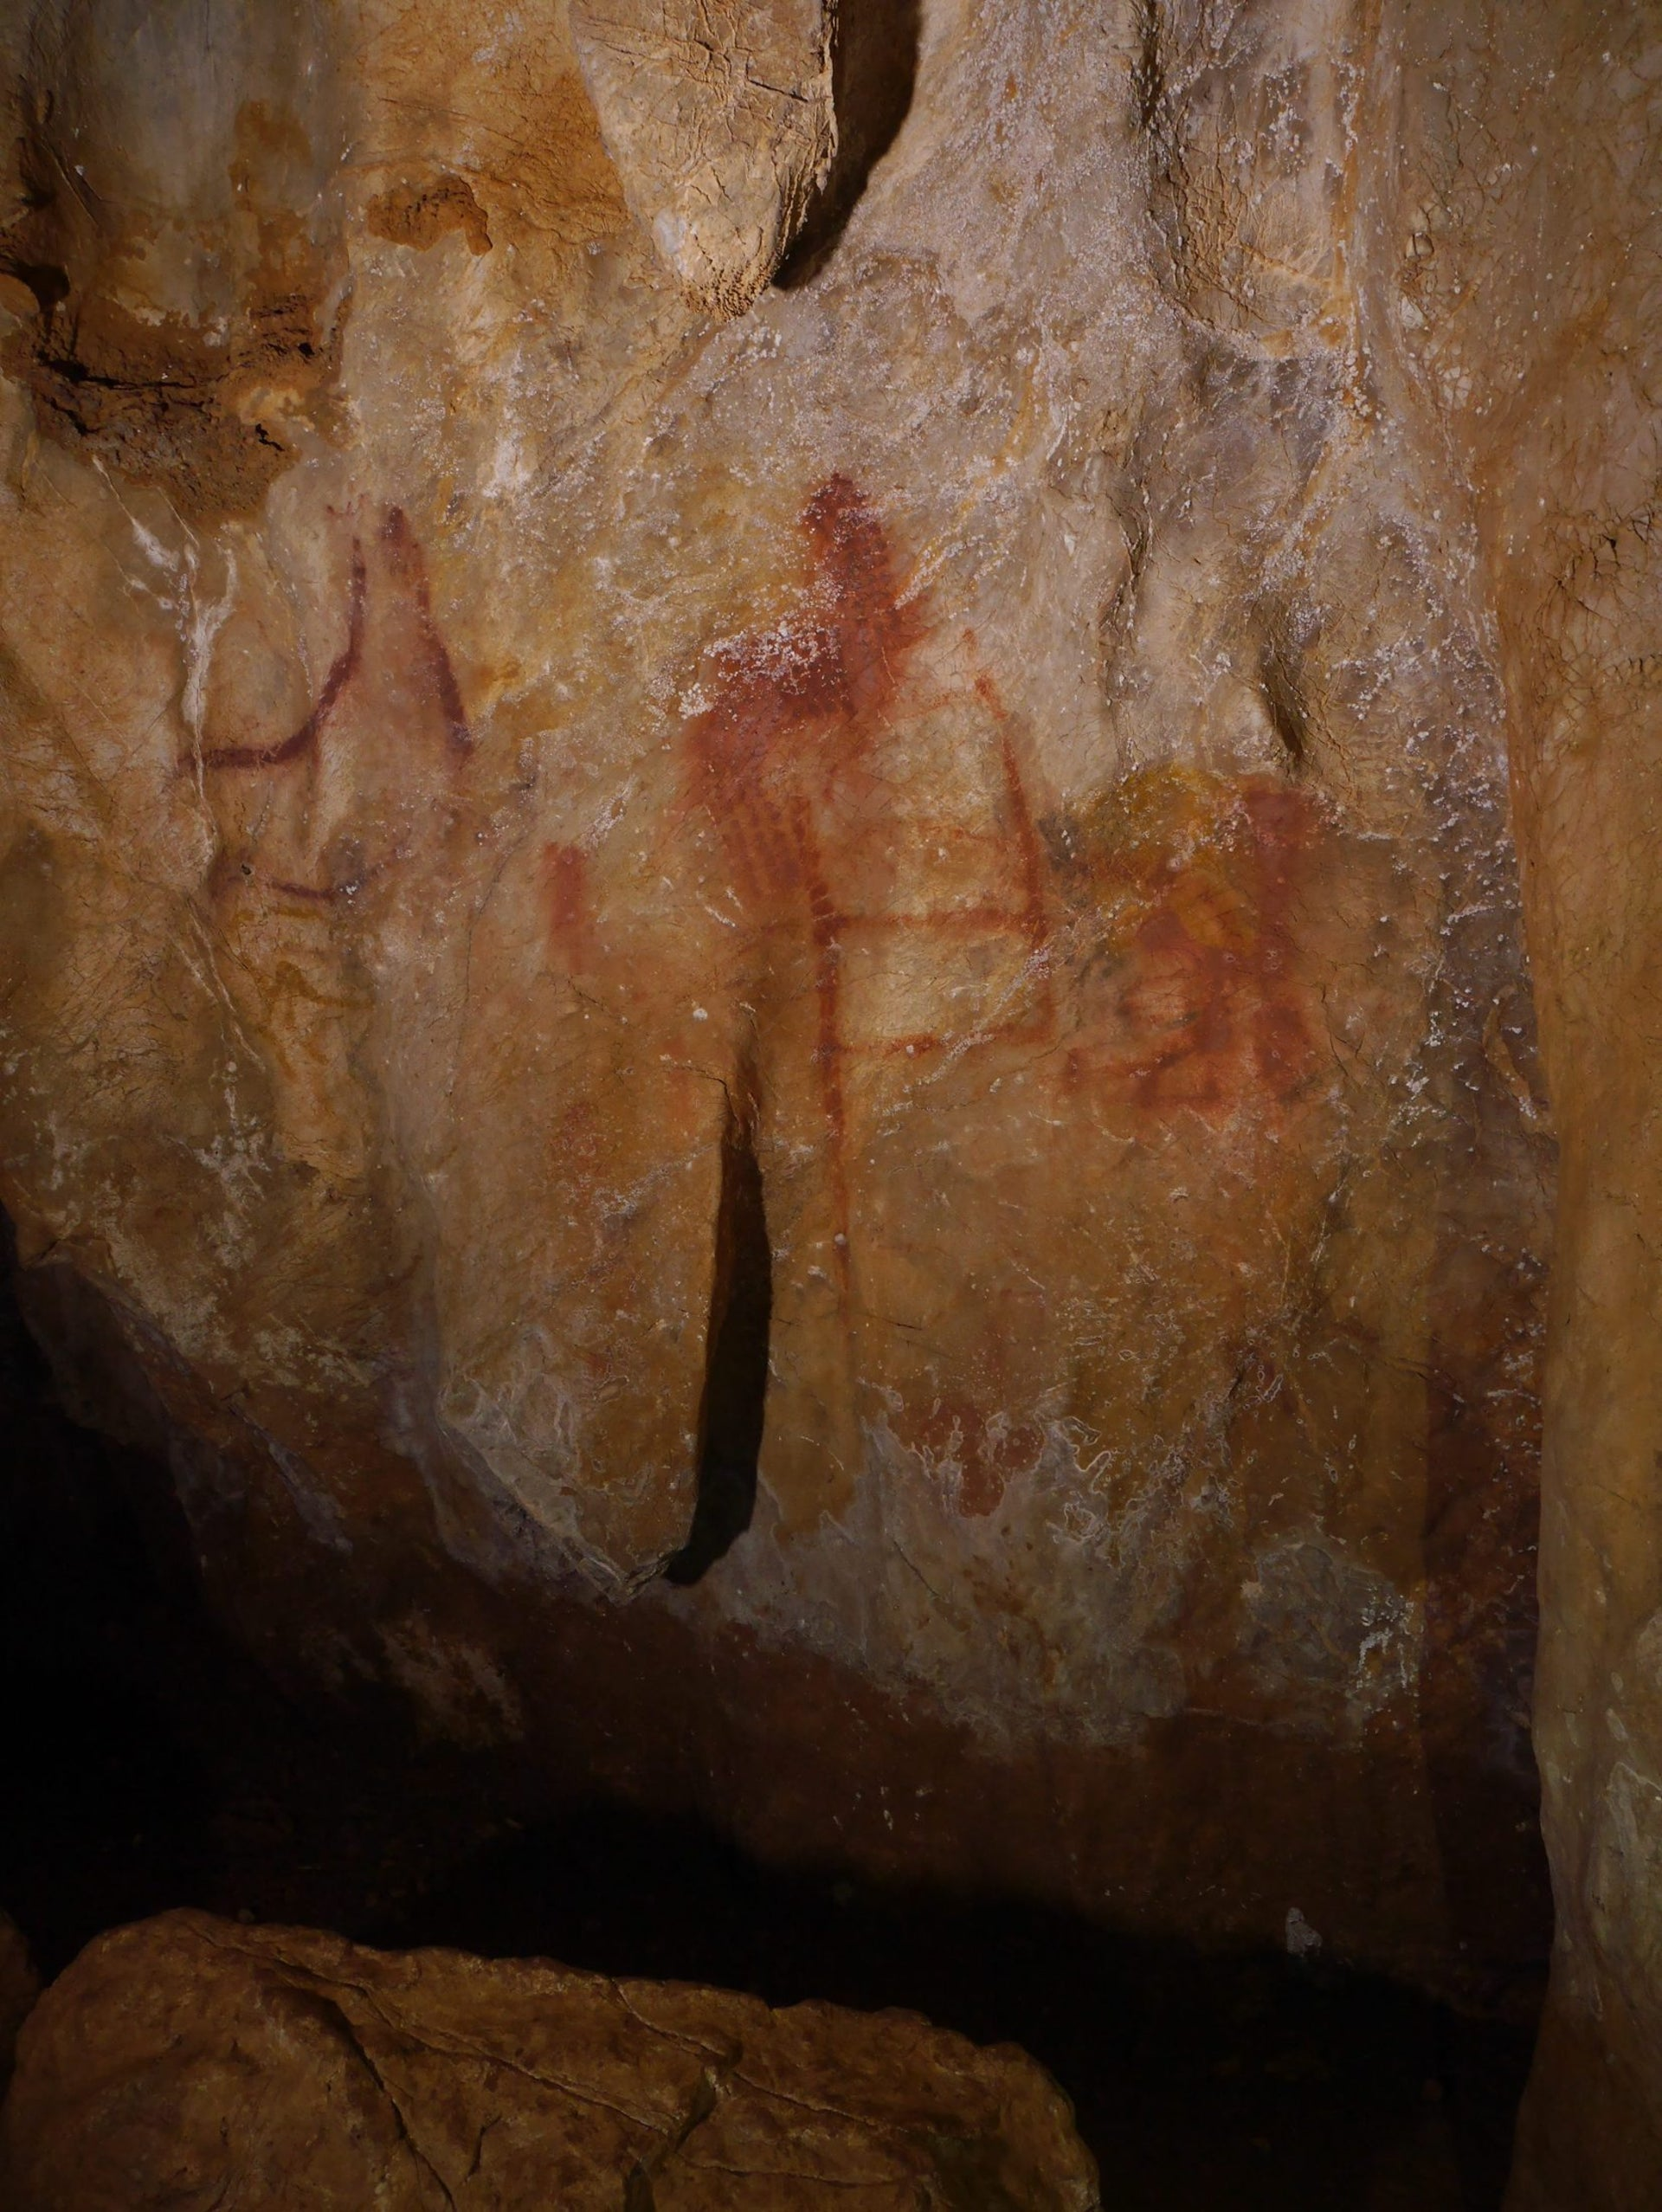 La Pasiega. The scalariform (ladder shape) composed of red horizontal and vertical lines dates to older than 64,000 years and was made by Neanderthals.